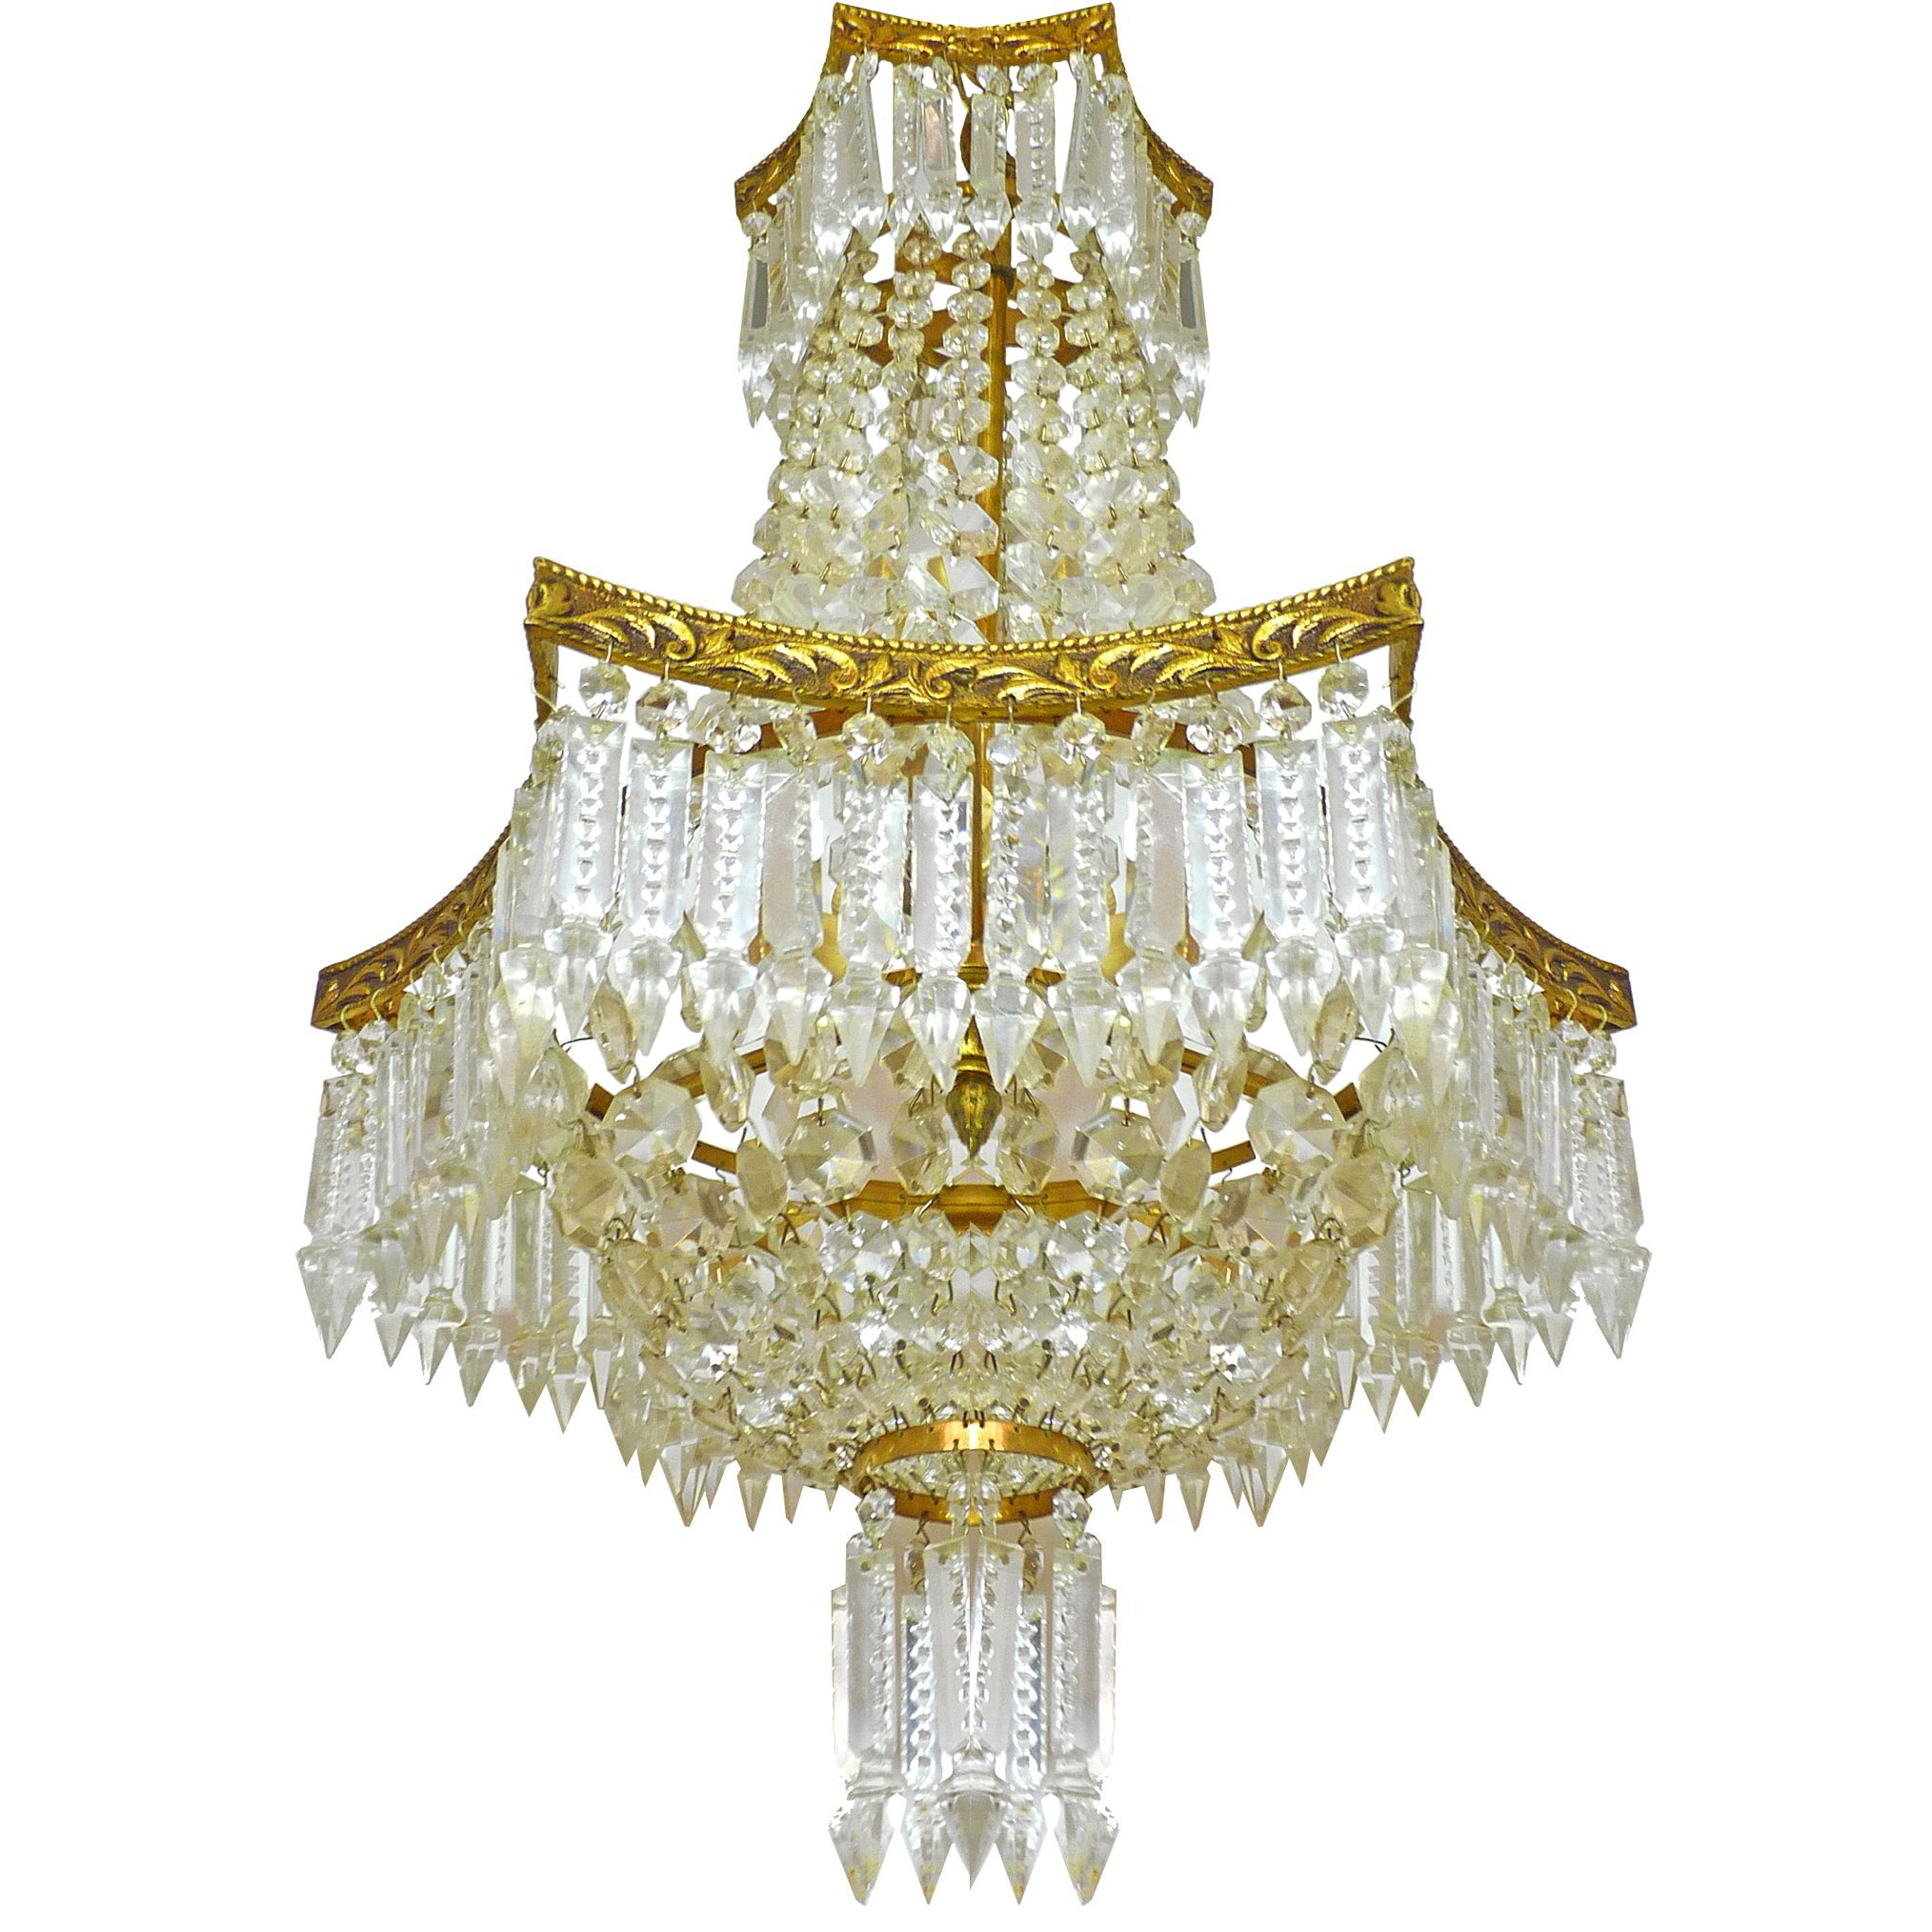 French Regency Empire Basket Neoclassical Chandeliergilt Bronze And Cut Crystal